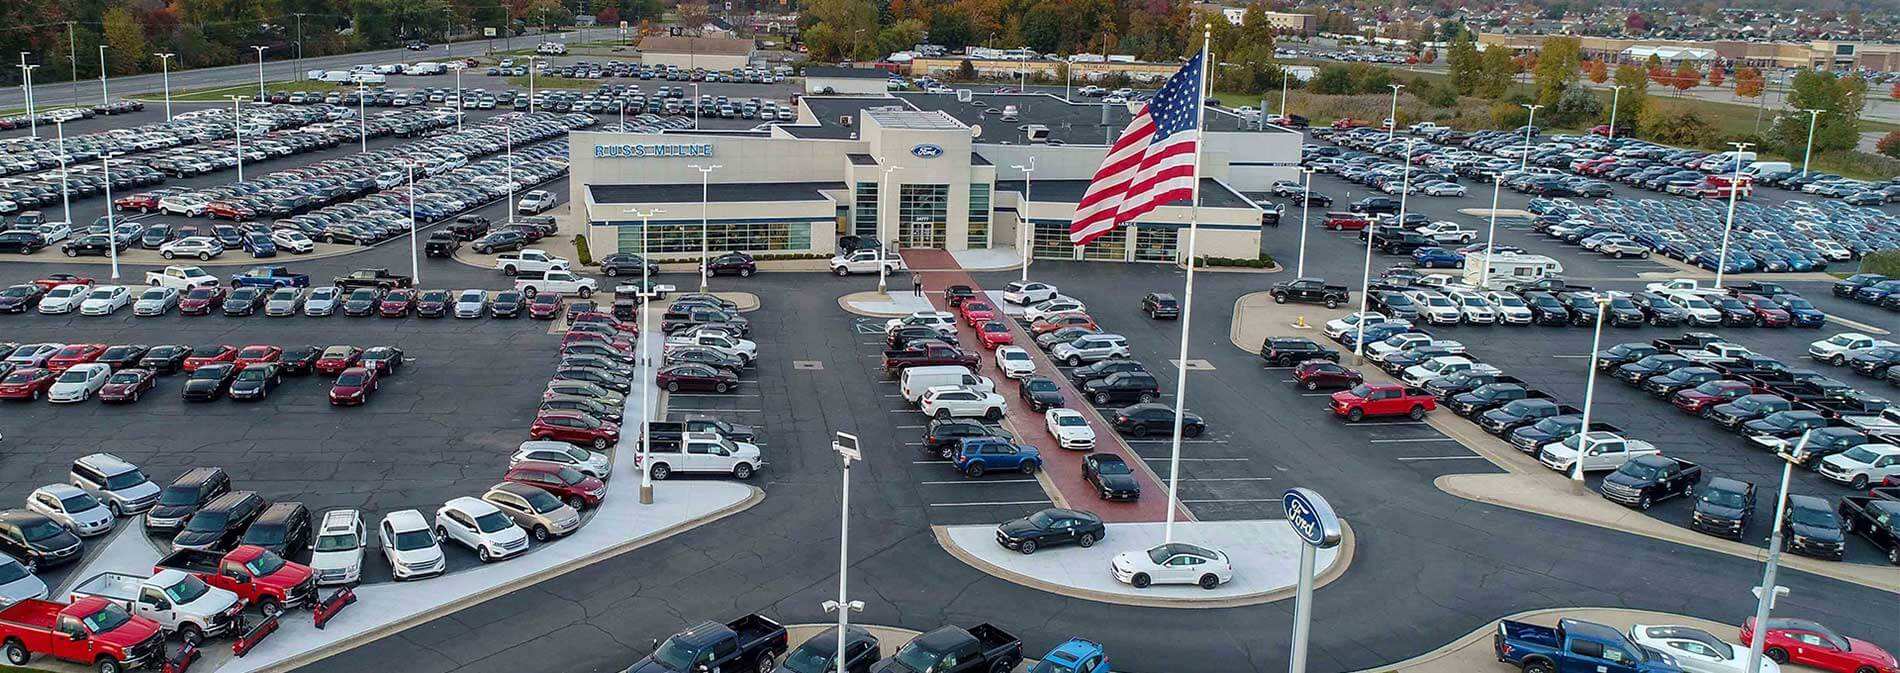 New Ford Used Cars Macomb Ford Dealer Serving Shelby Township